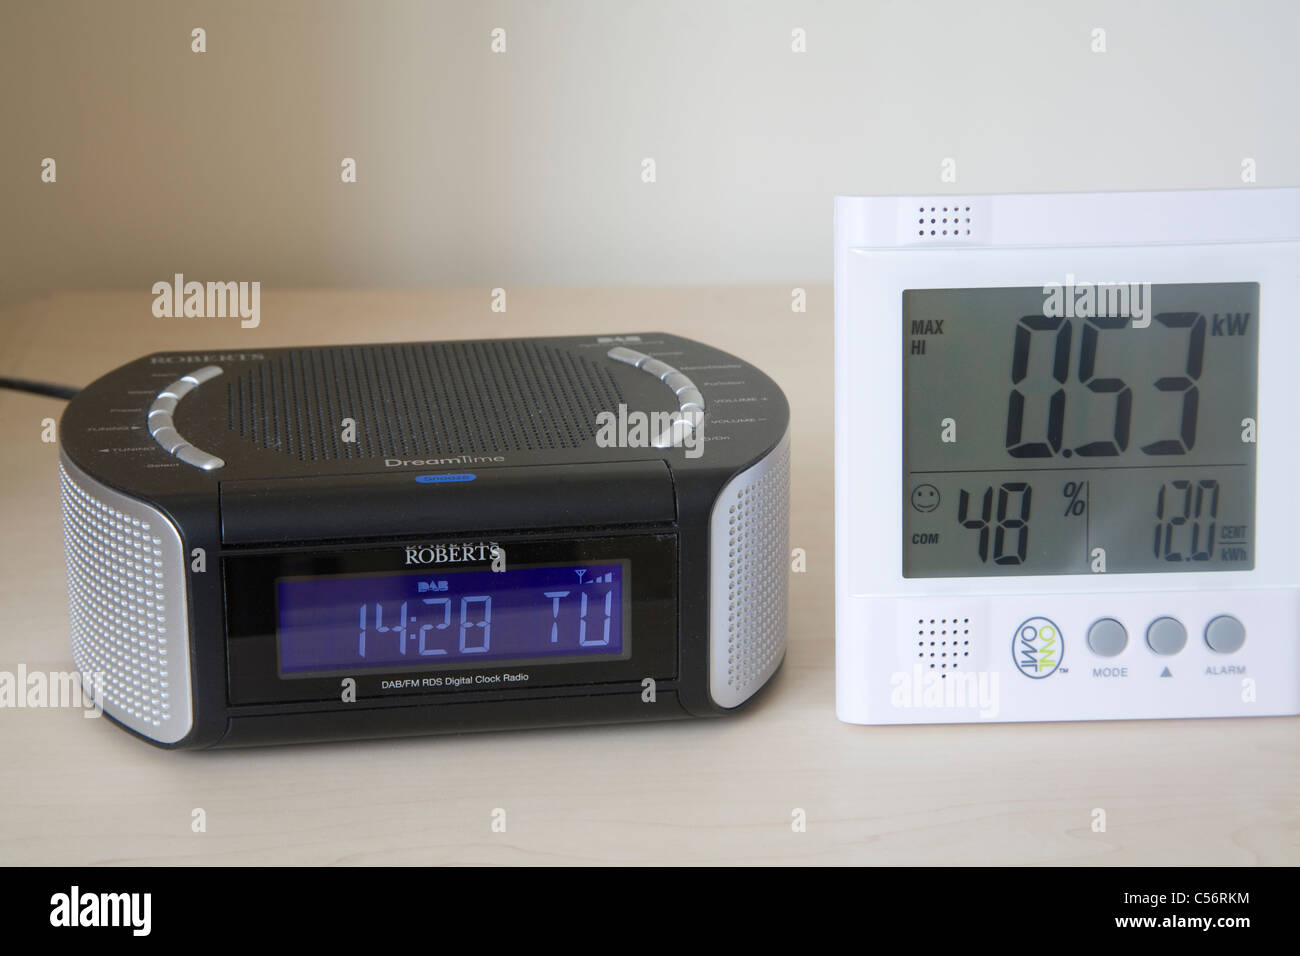 Close up Owl electricity power monitor by a DAB digital radio alarm clock - Stock Image